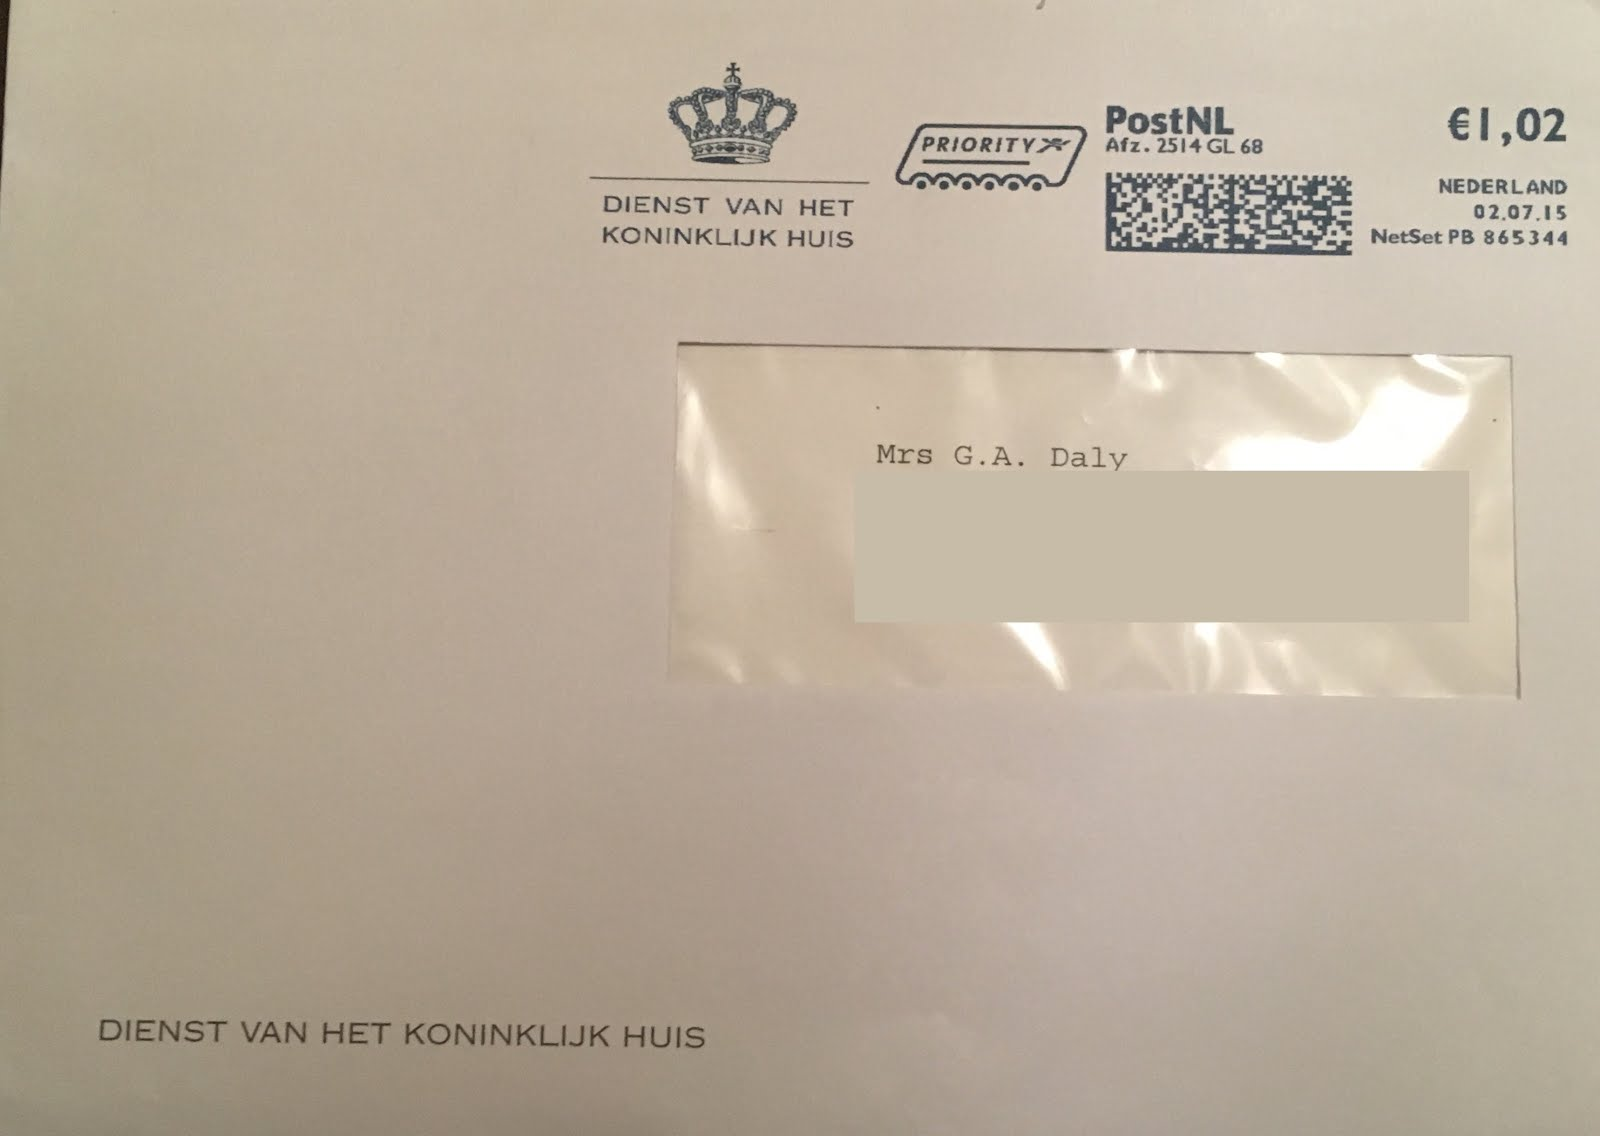 Gert'S Royals: Thank You Letter From The King And Queen Of